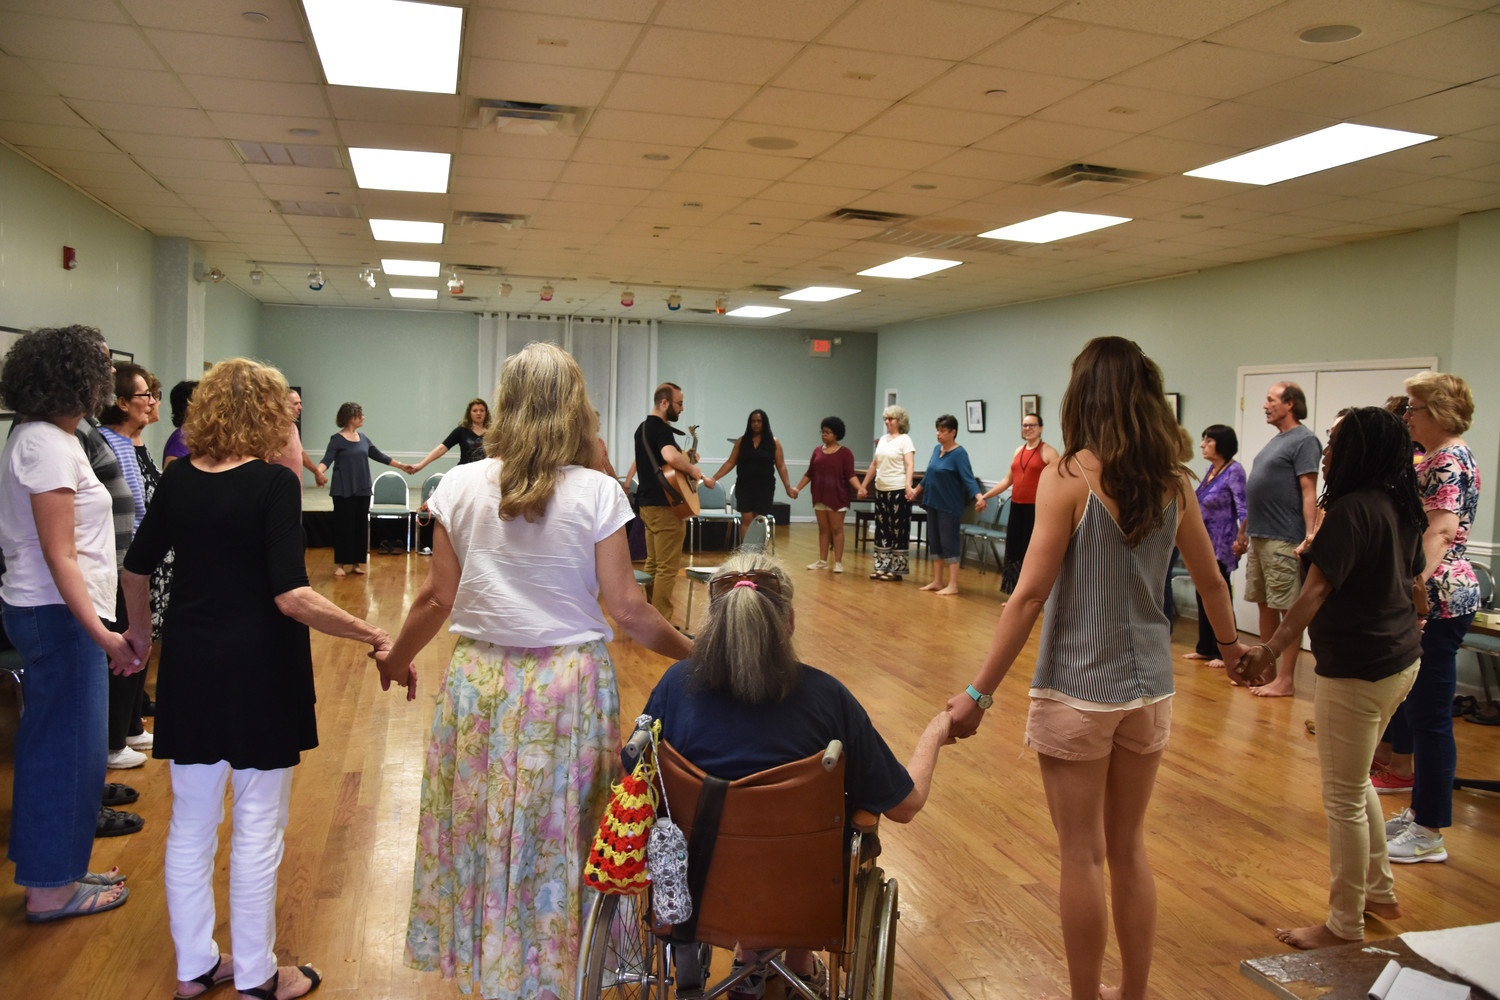 About 50 people turned out for the Baha'i Center's first ever Dances of Universal Peace on June 9.